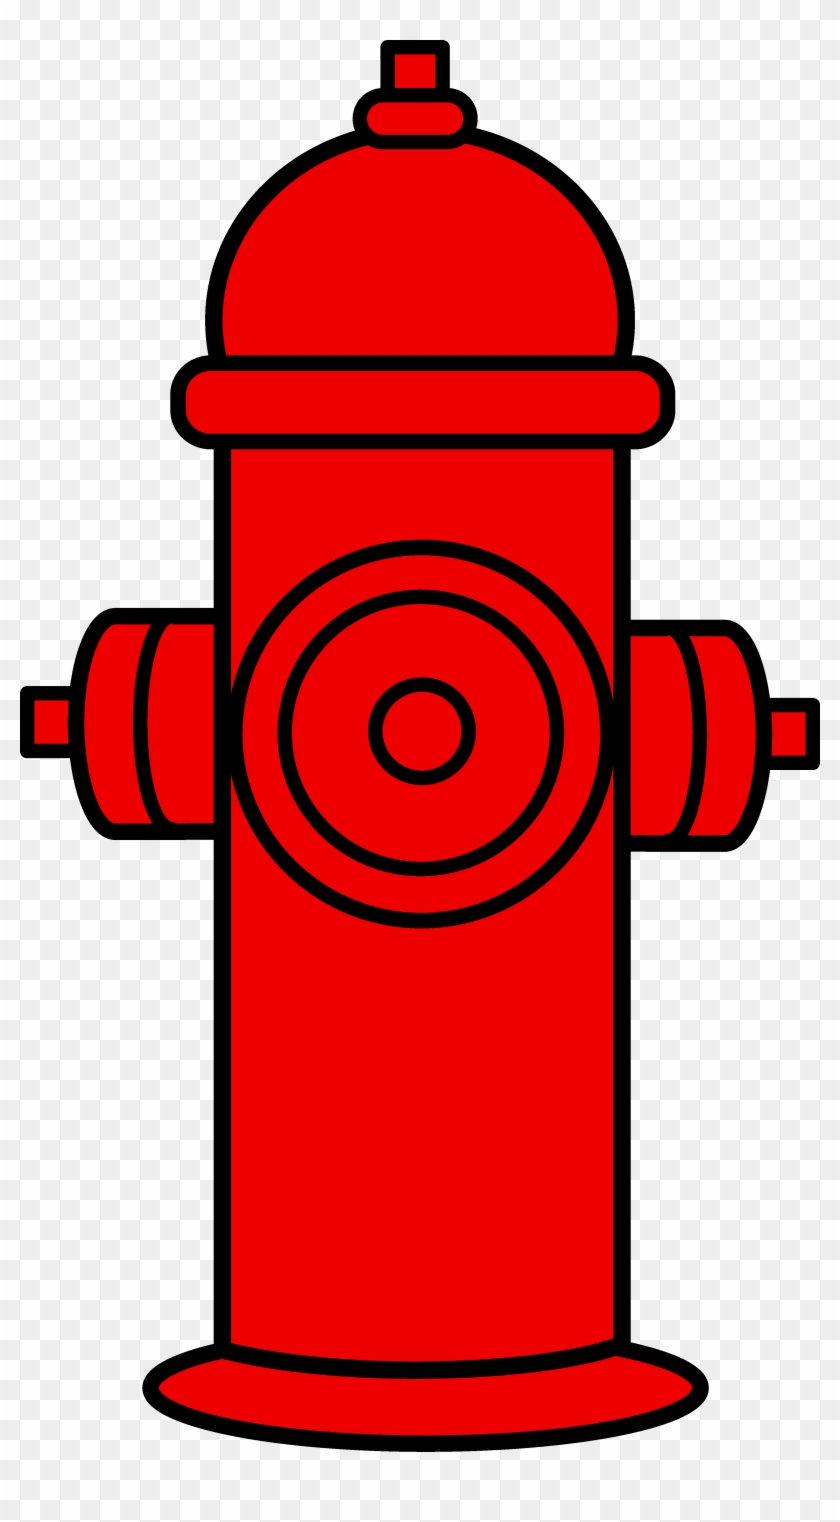 Fire Hydrant Clipart - Clip Art Fire Hydrant - Png Download #69946